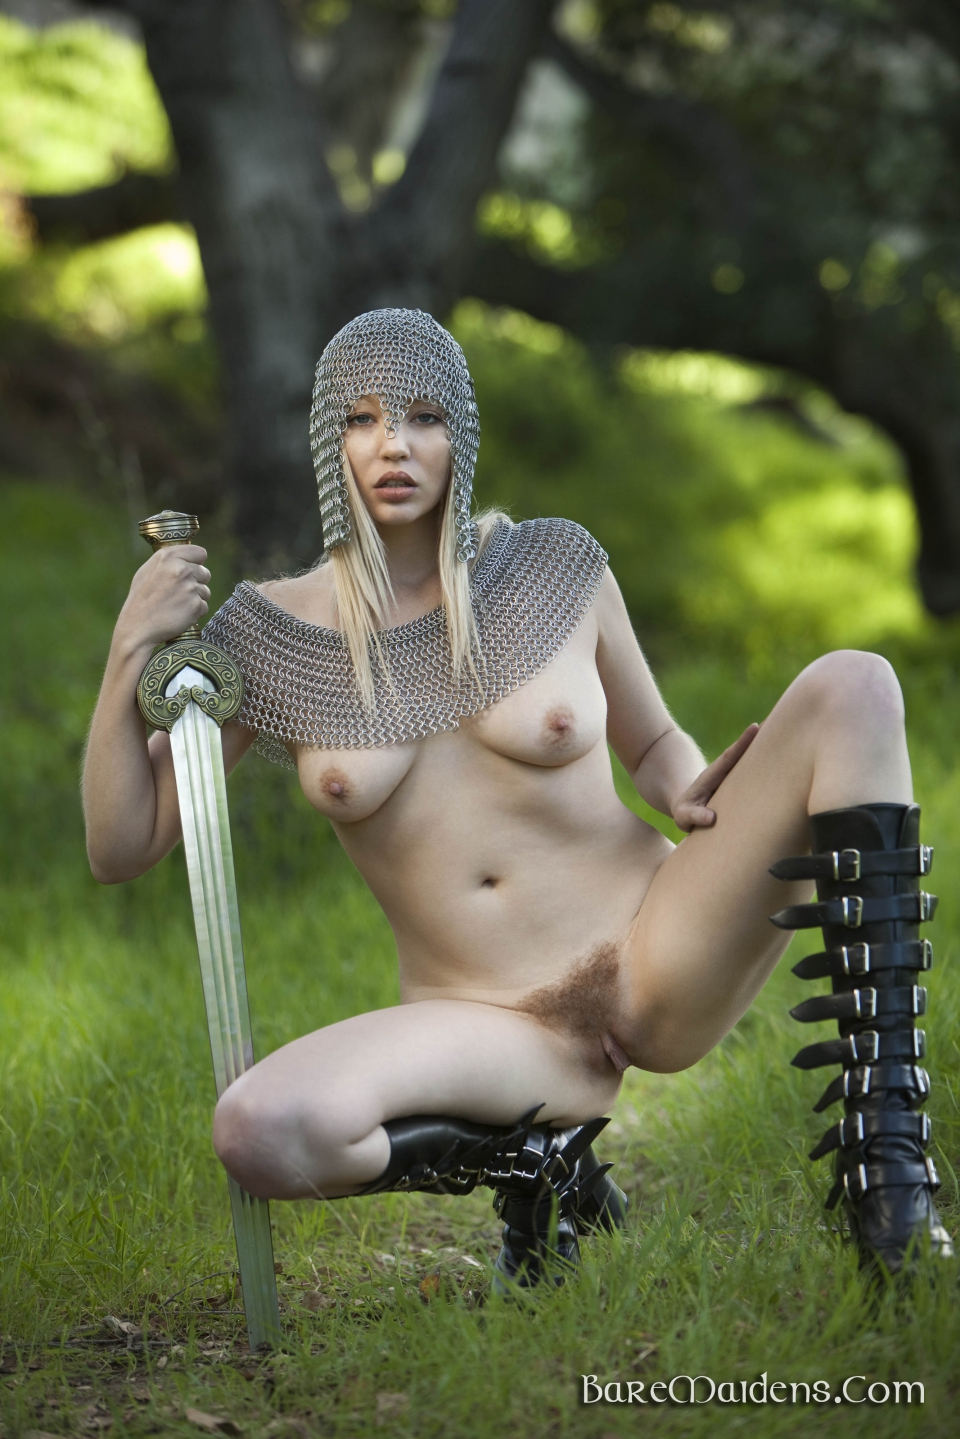 Cute dark skin female warrior sword nude  sex image